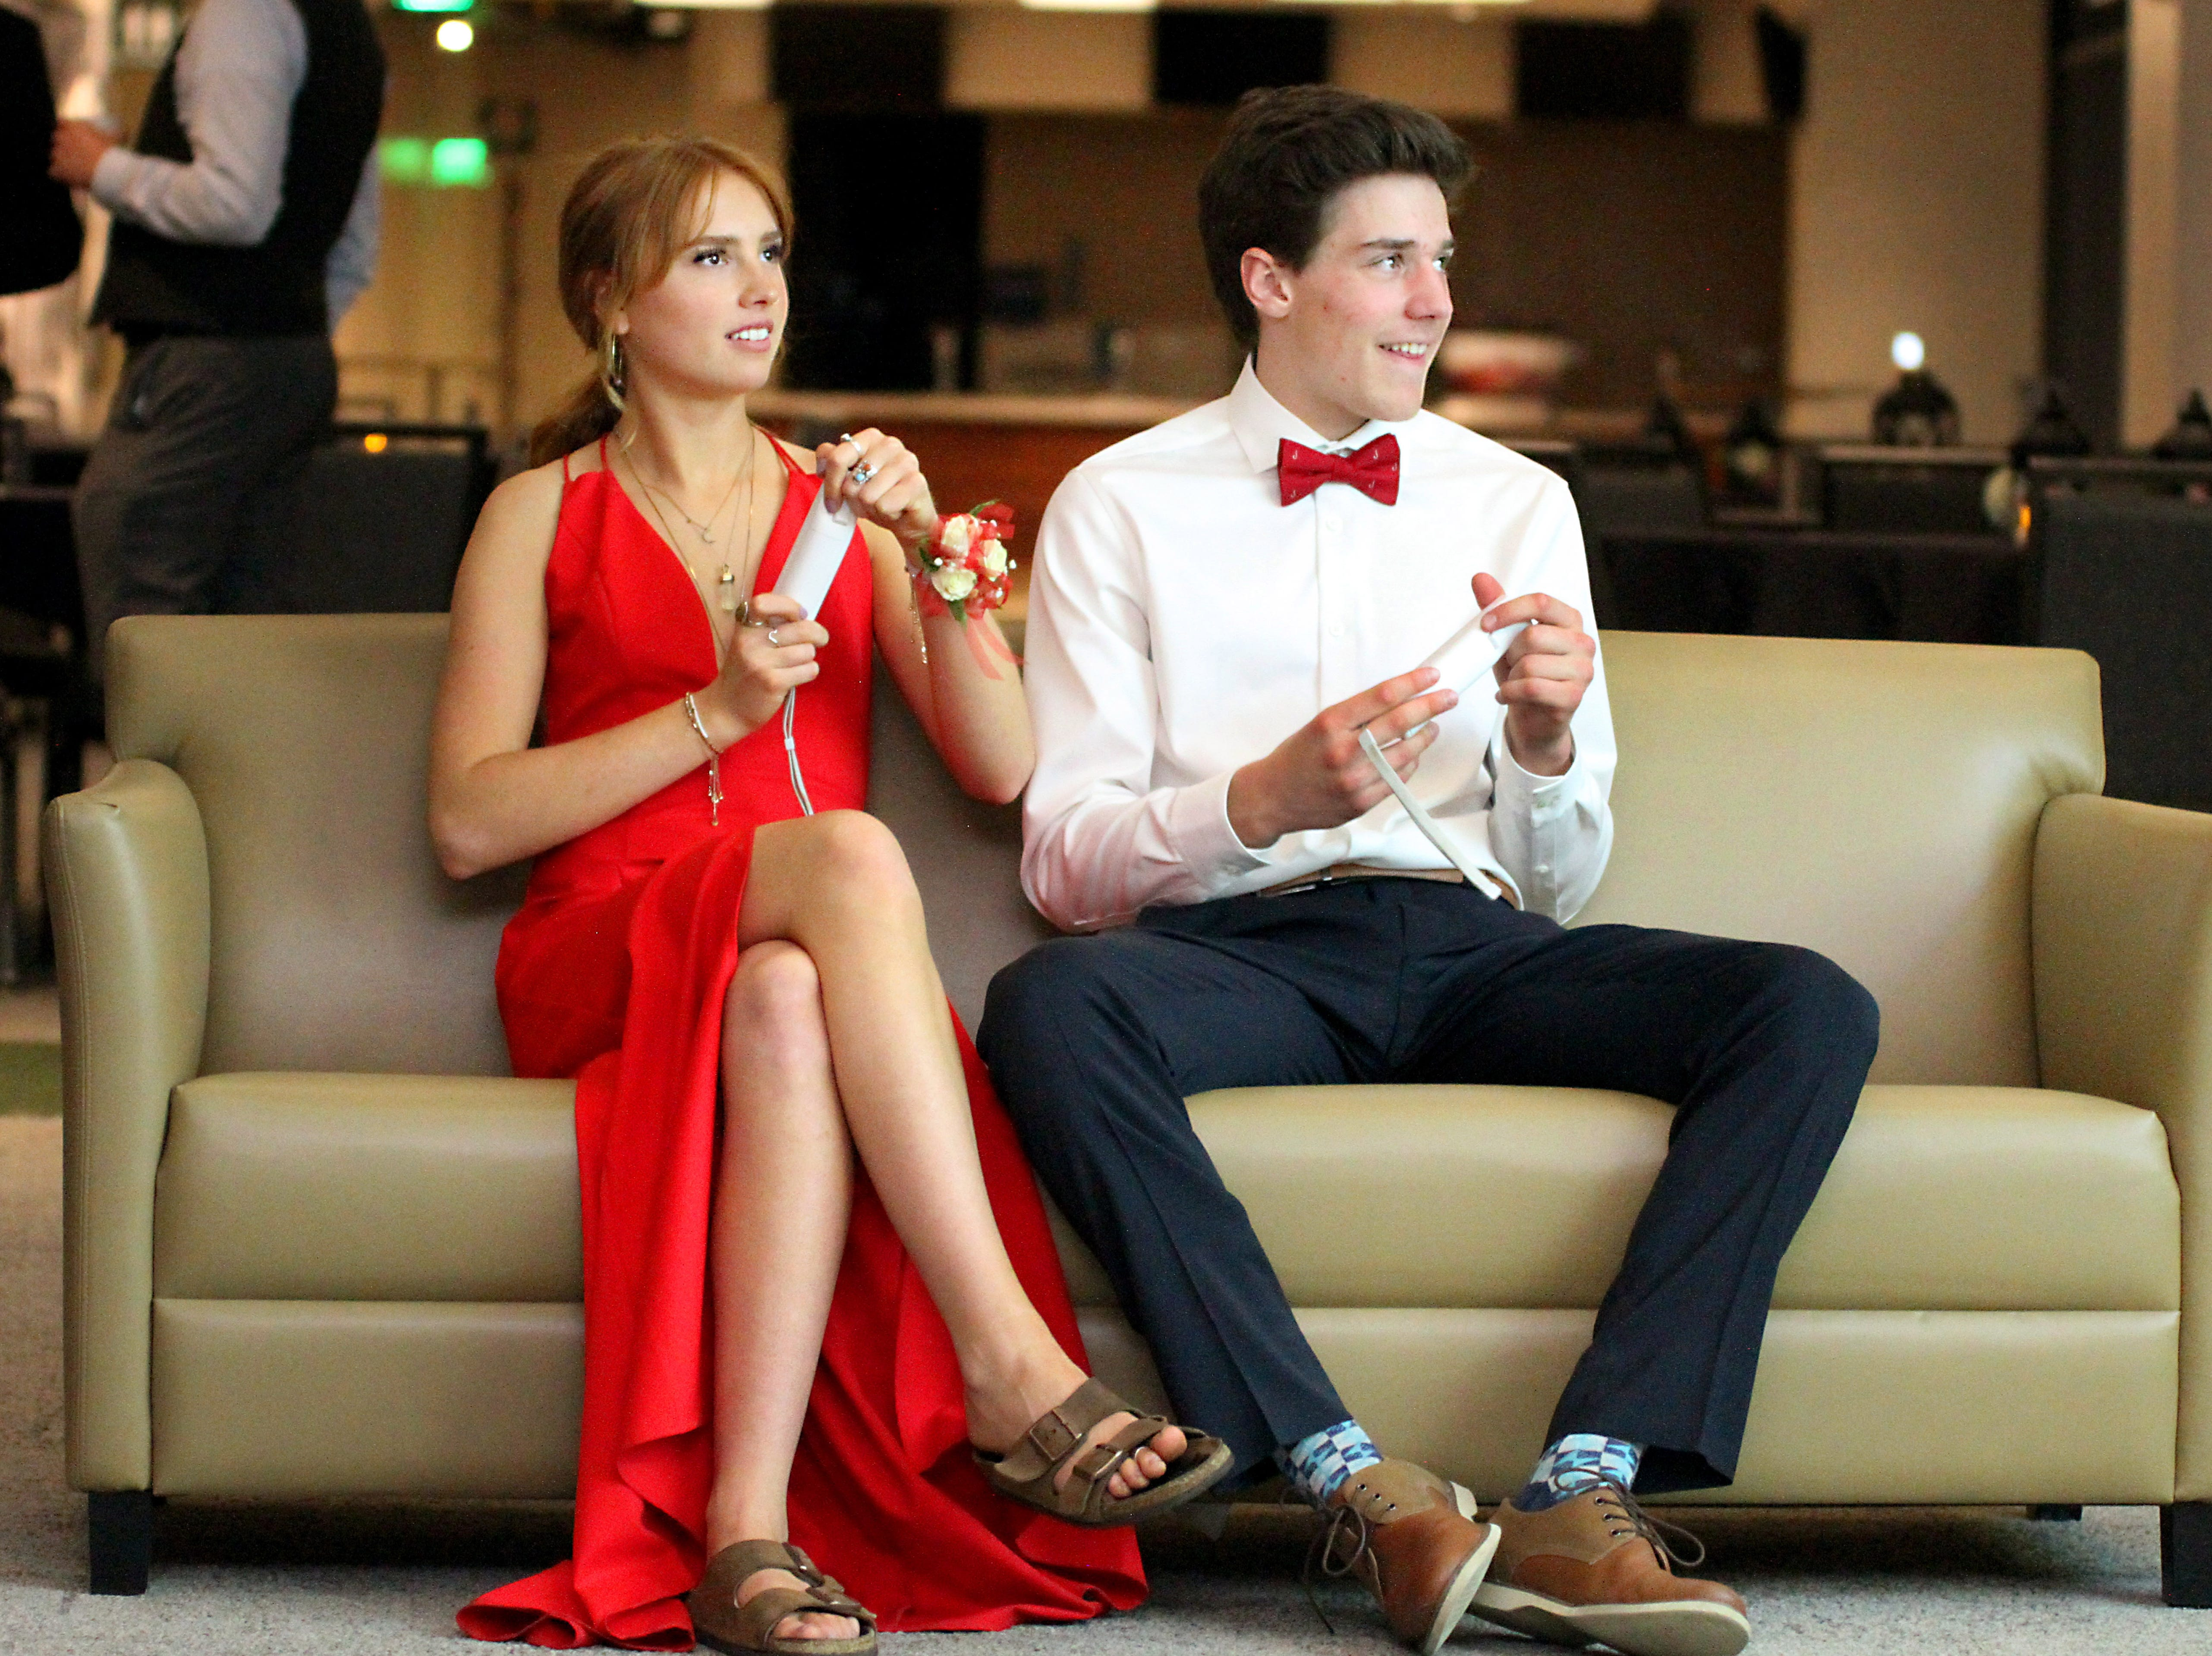 Joel Blocker / For the ColoradoanFort Collins High School seniors, Savannah Sanford and Will Lamperes, take a break from dancing to play video games during the Fort Collins High School prom held at Canvas stadium Saturday night.